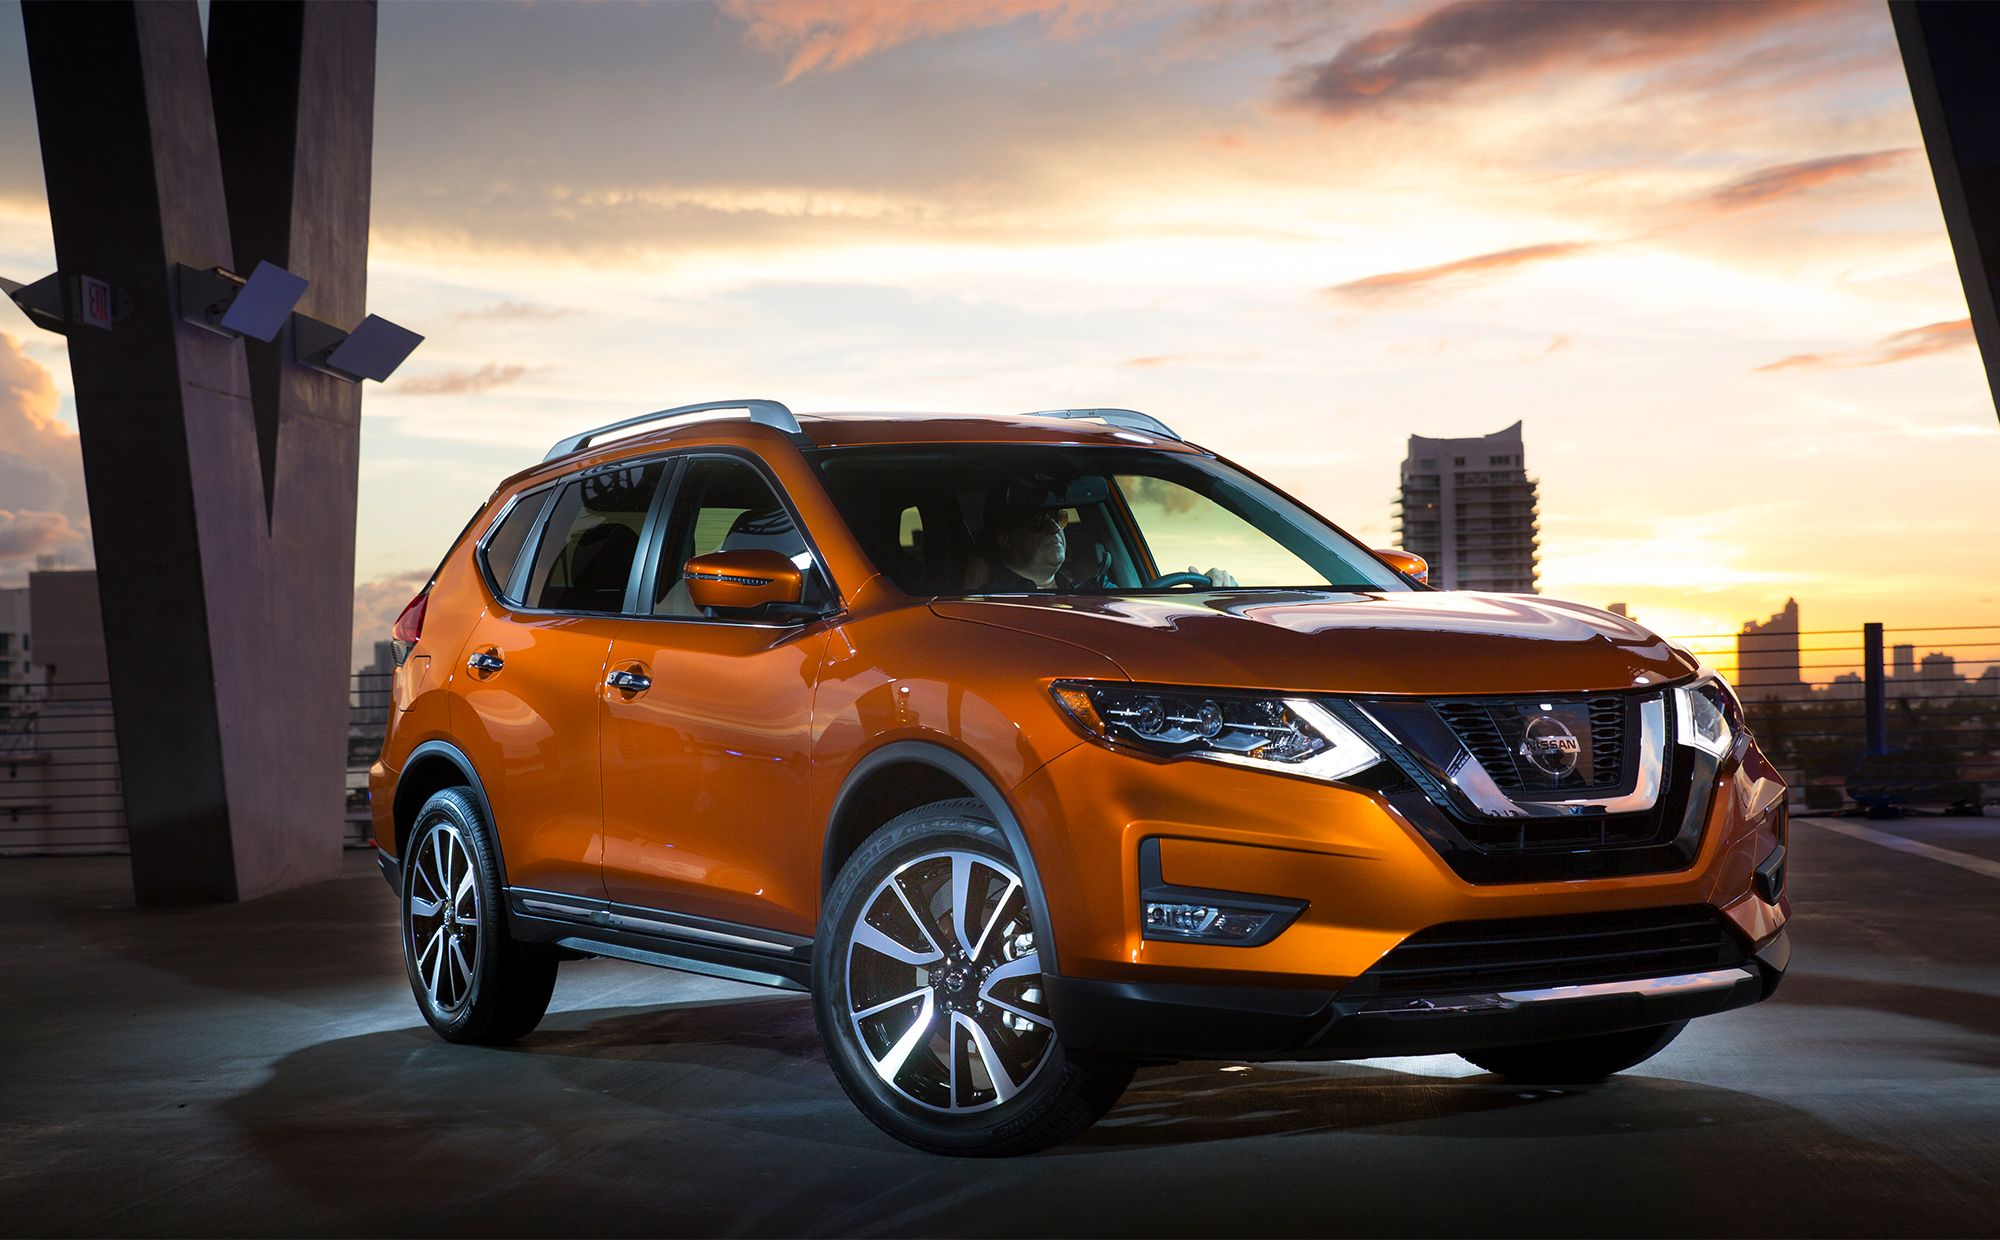 Why the New 2017 Nissan Rogue Rules! Check out all the